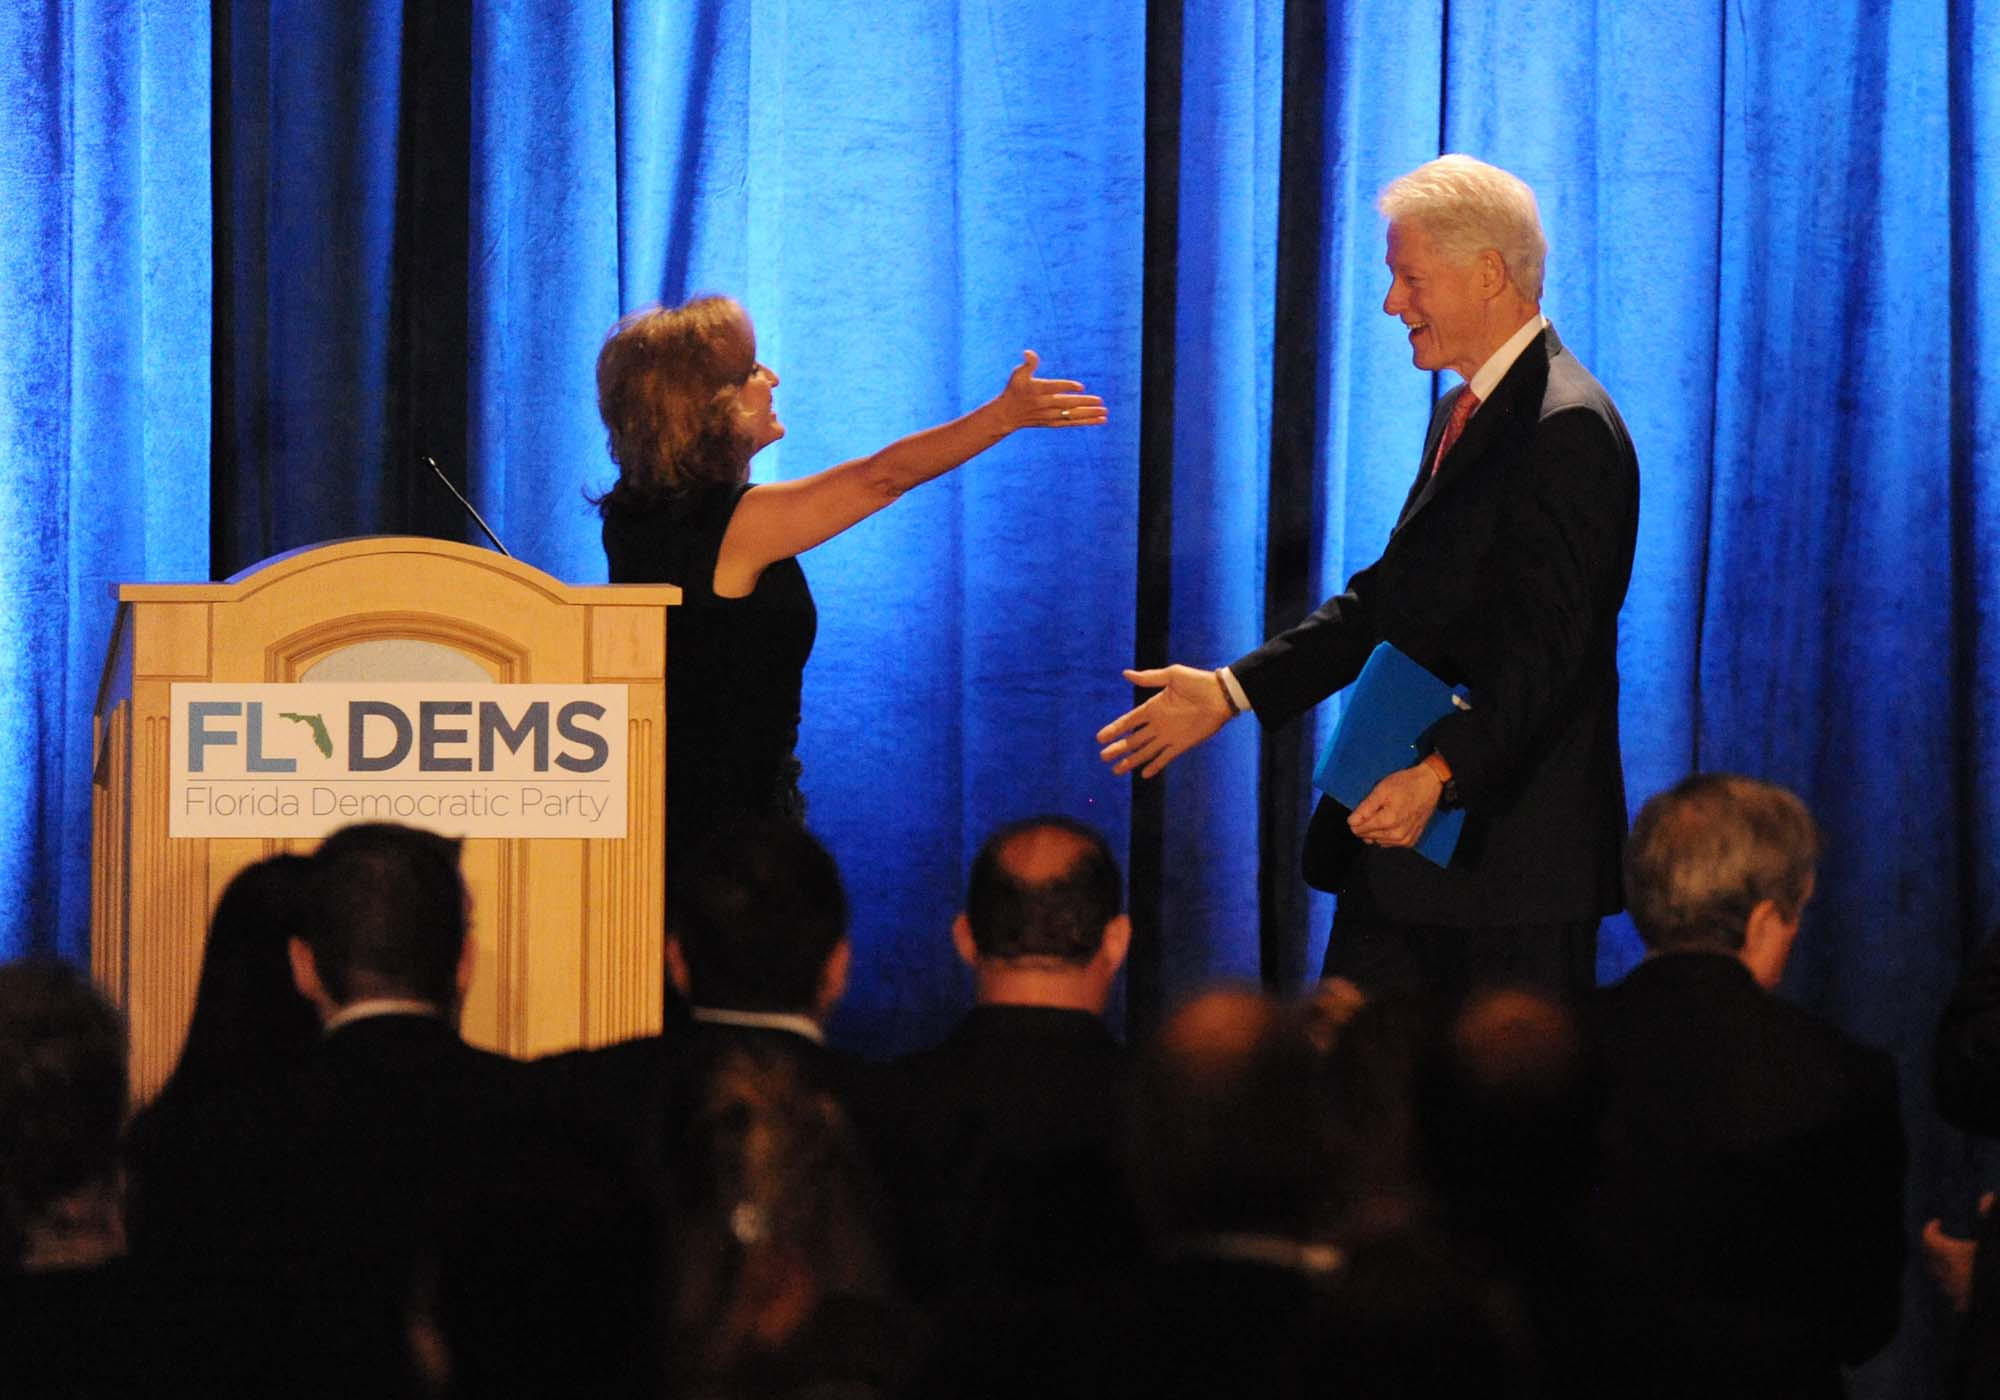 President Clinton is welcomed to the stage by Florida Democratic Chairwoman Allison Tant at the Florida Democratic Party's big annual gathering held at the Westin Diplomat in Hollywood. Jim Rassol, Sun Sentinel. 6/28/2014.